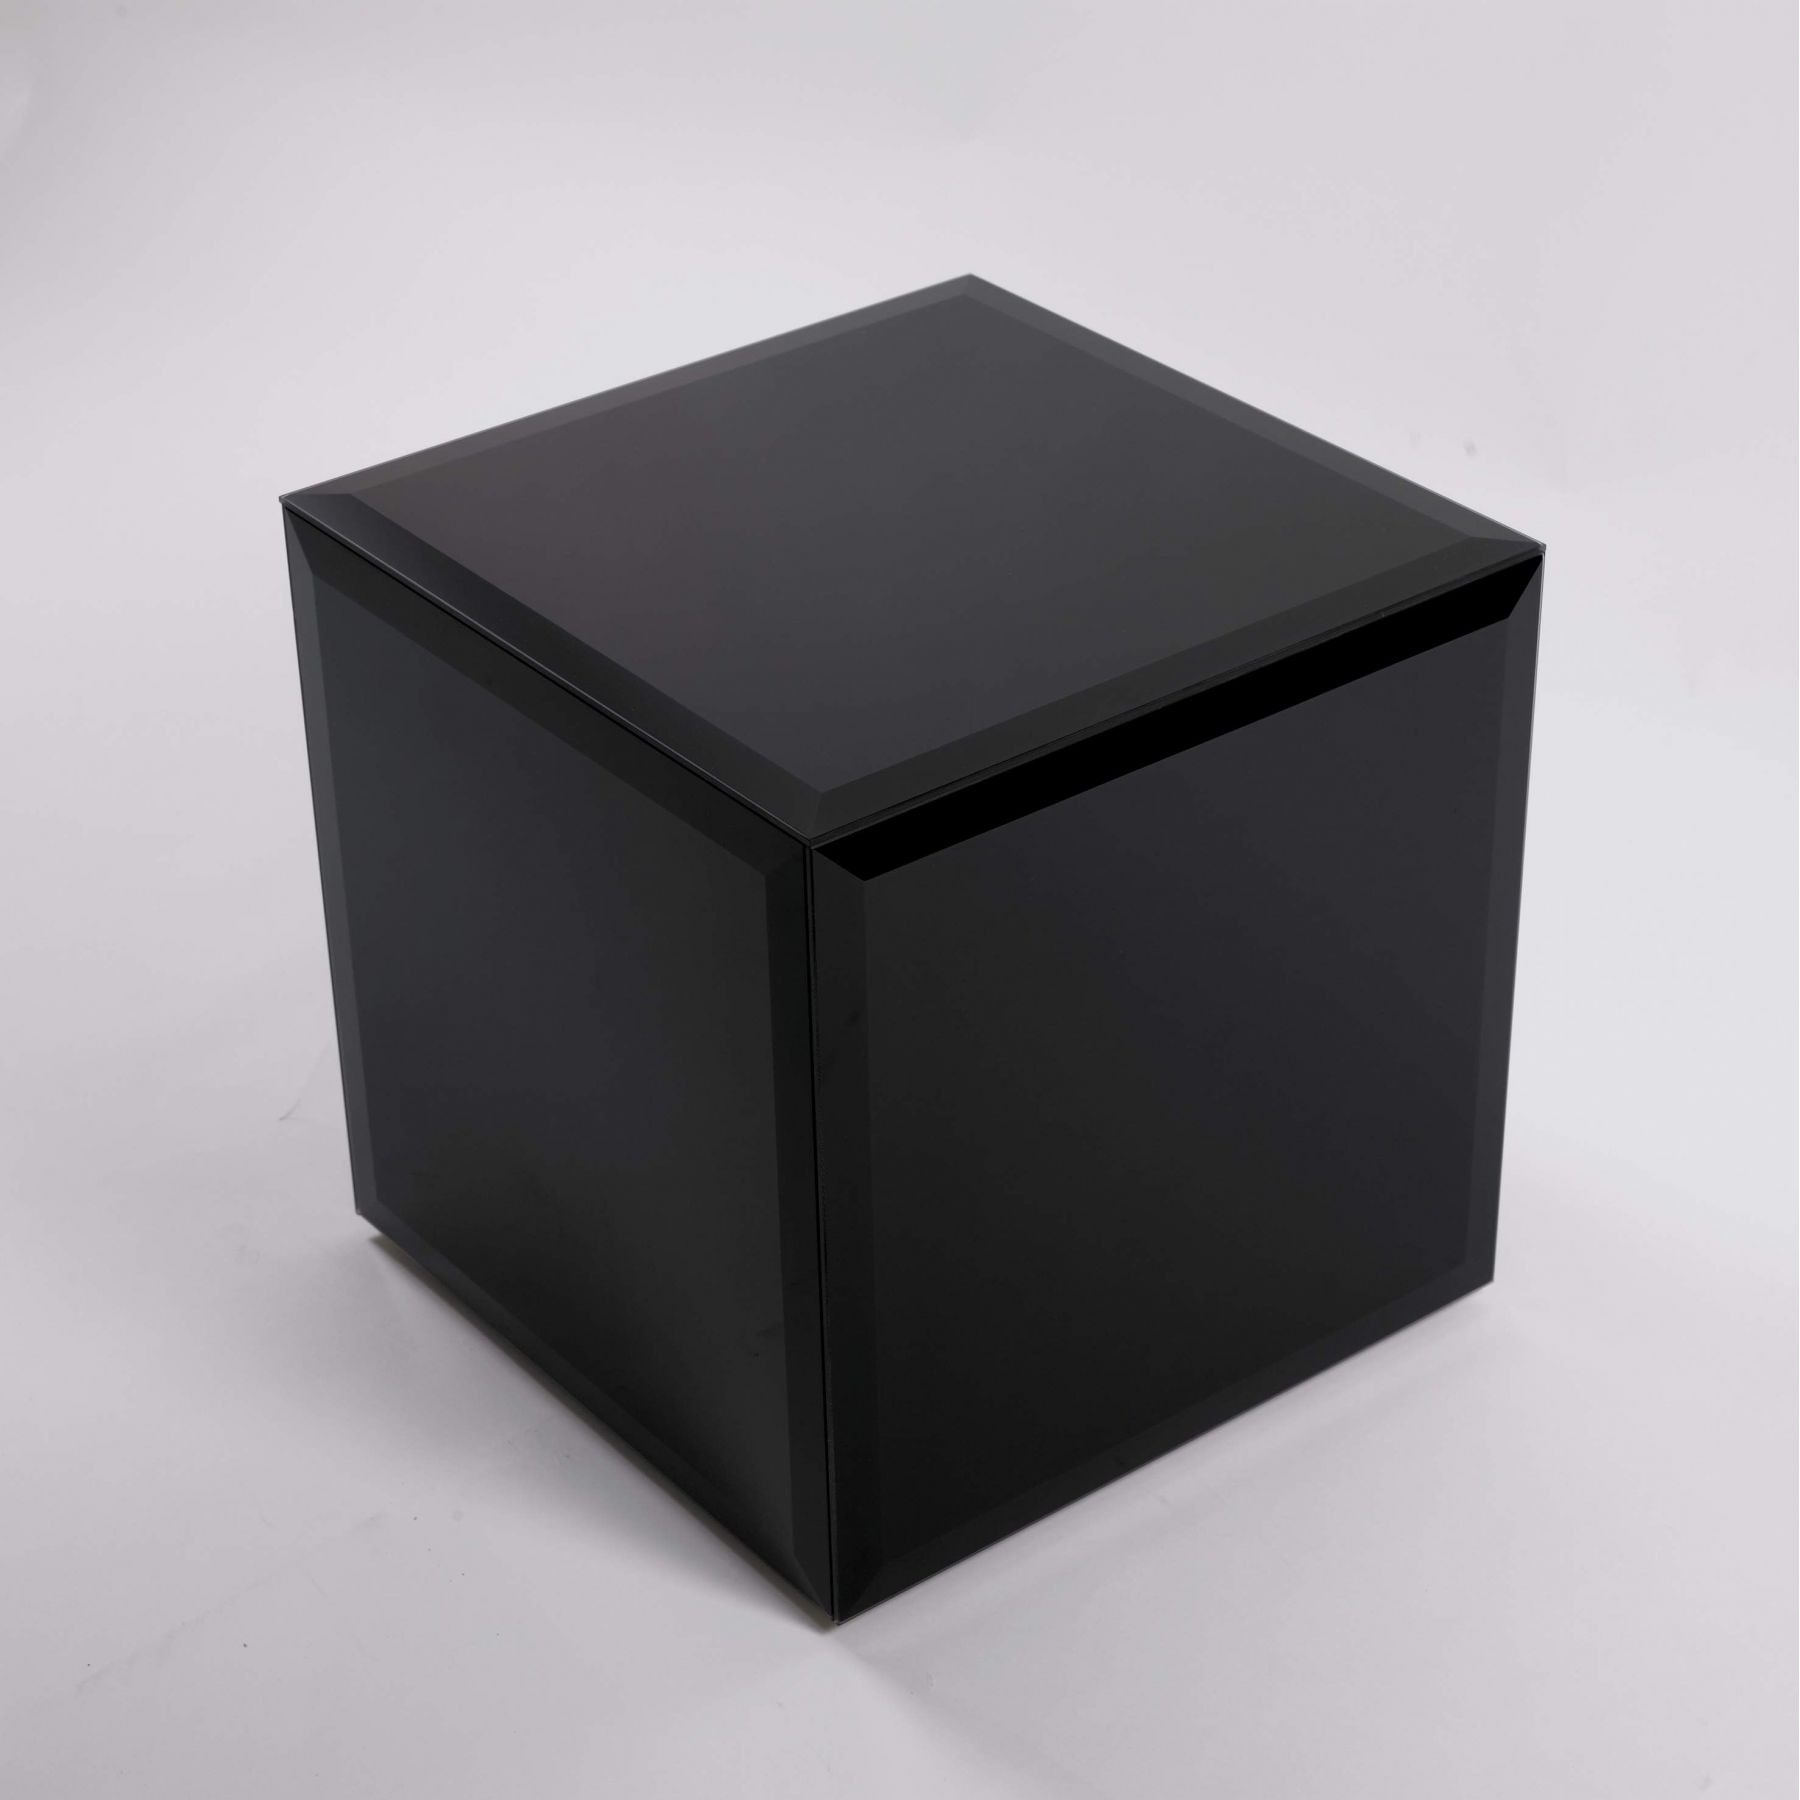 Black Glass Cube Glass Furniture From Homesdirect 365 Uk